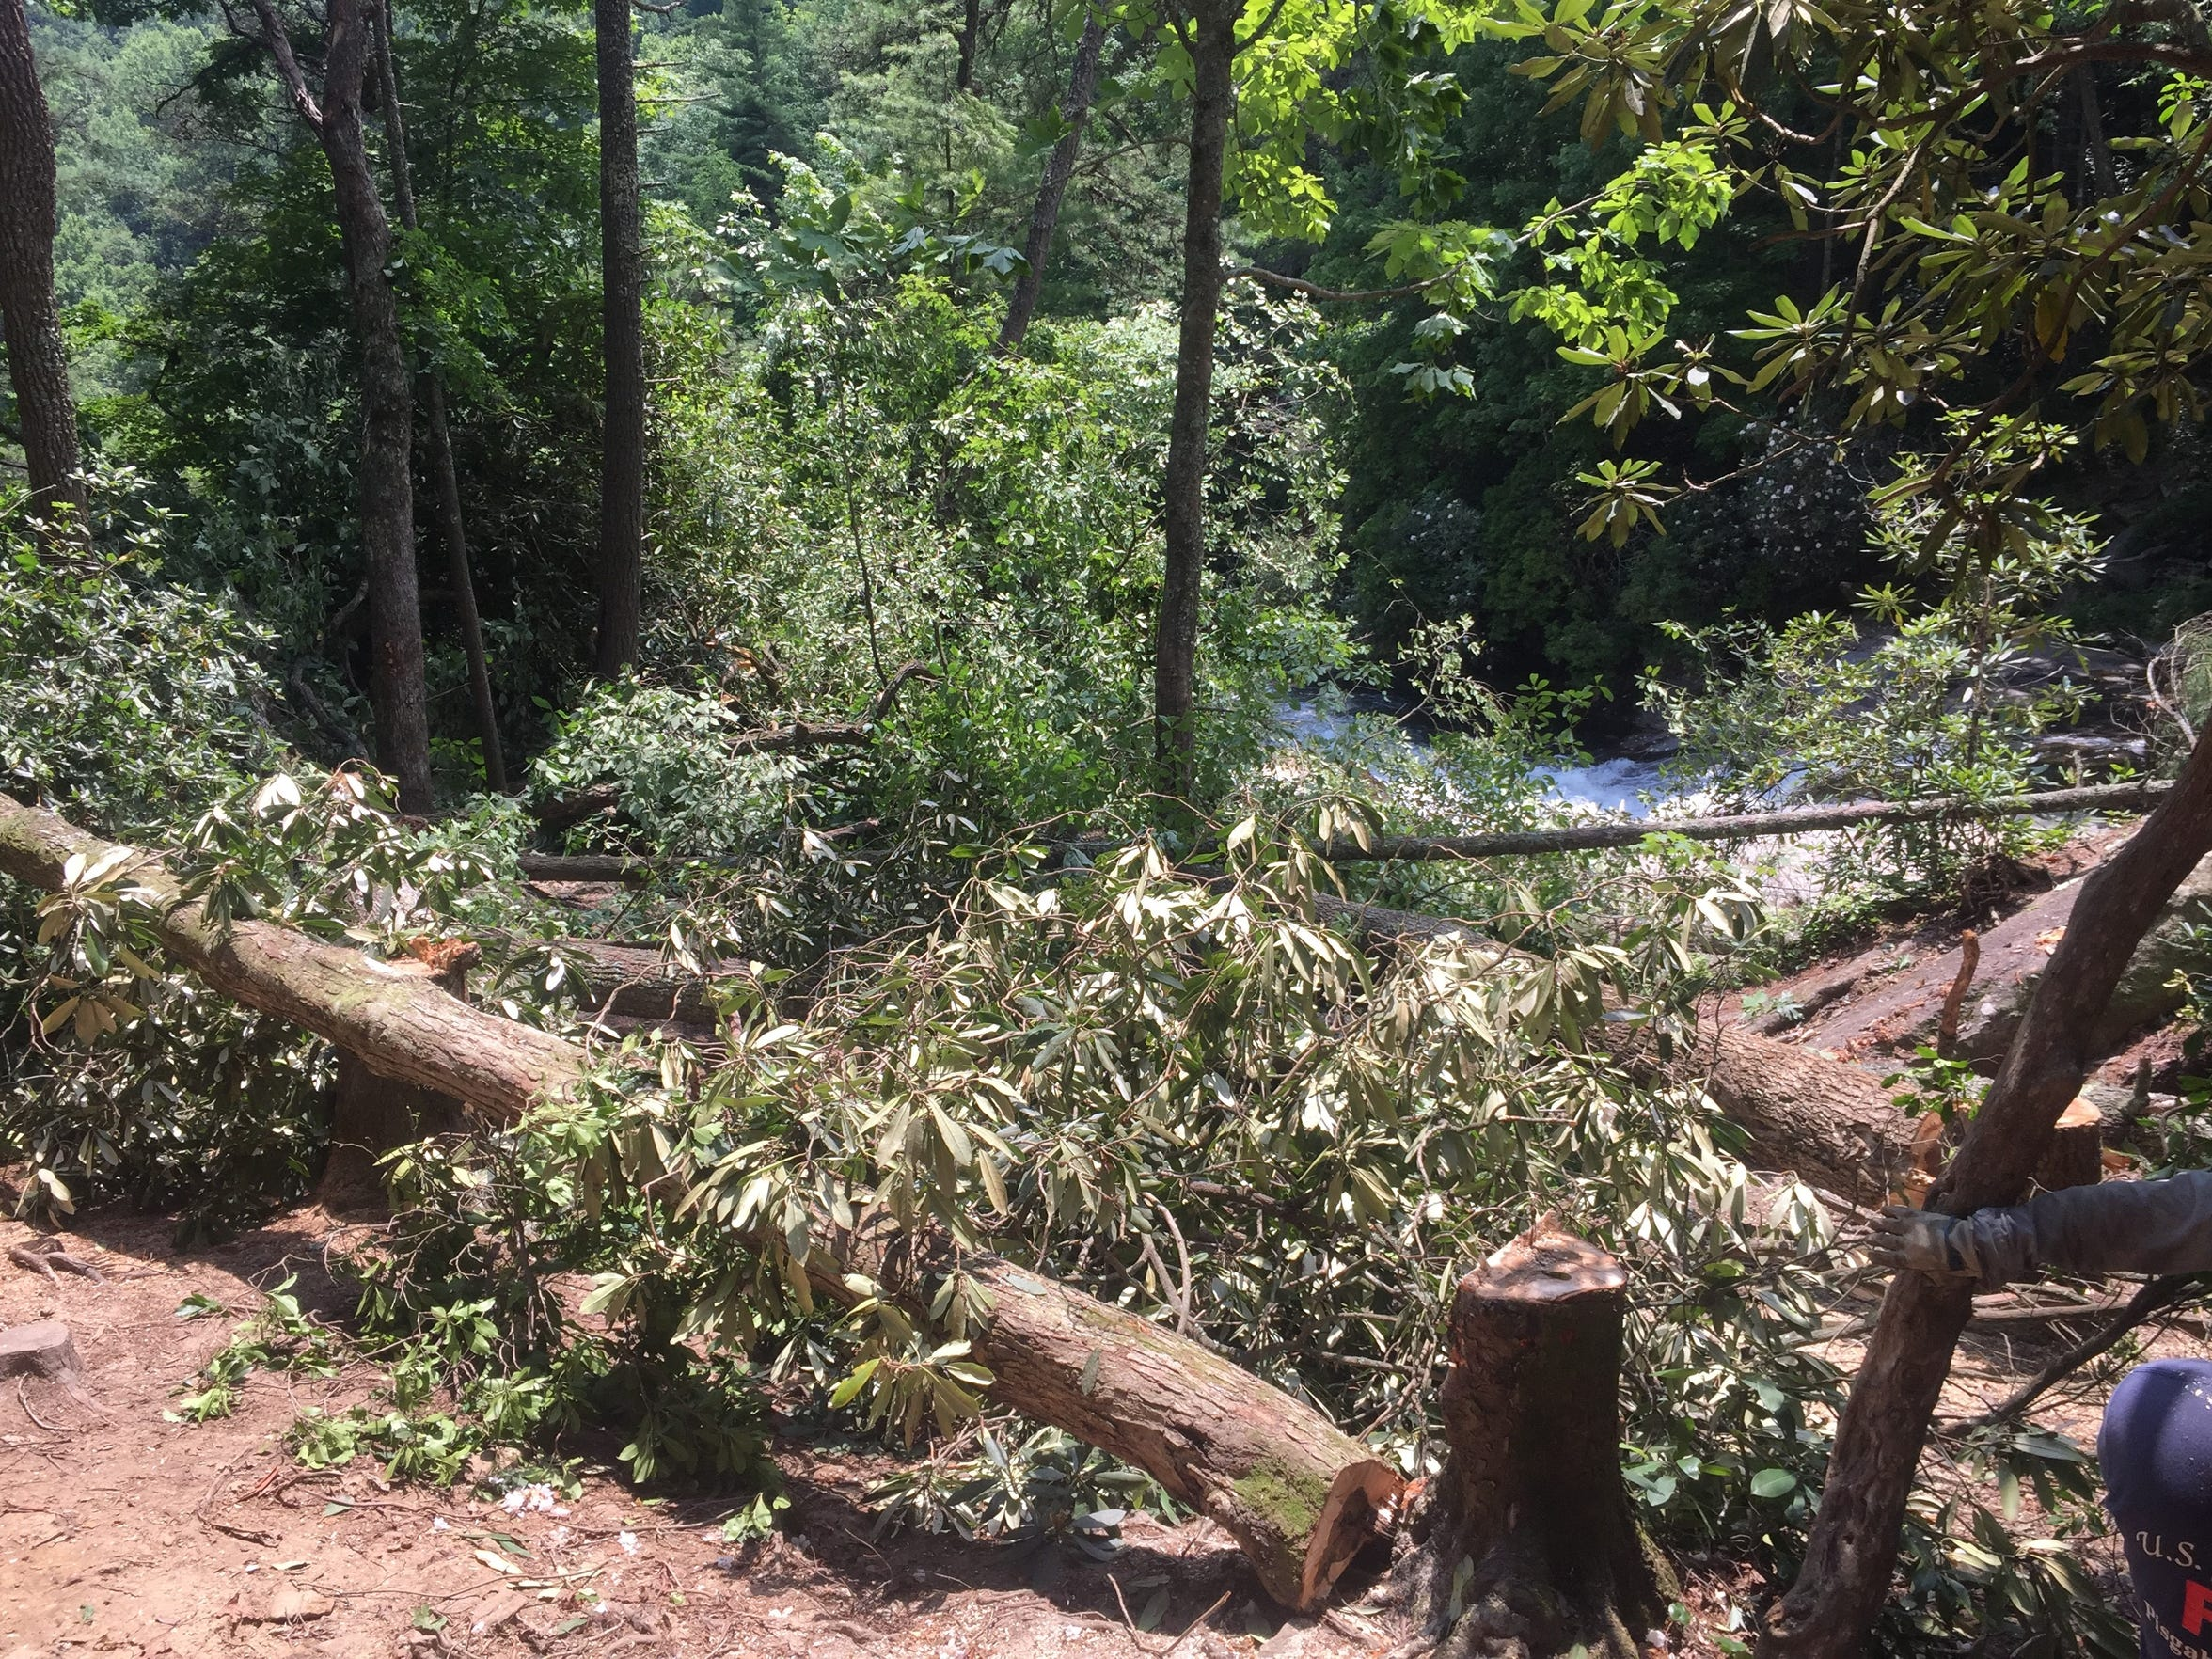 On July 11, one week after a teenage girlÕs death at Rainbow Falls, the US Forest Service went to work on the trail felling several dead or dying trees across an inviting opening at the top of Rainbow falls to deter people from entering.